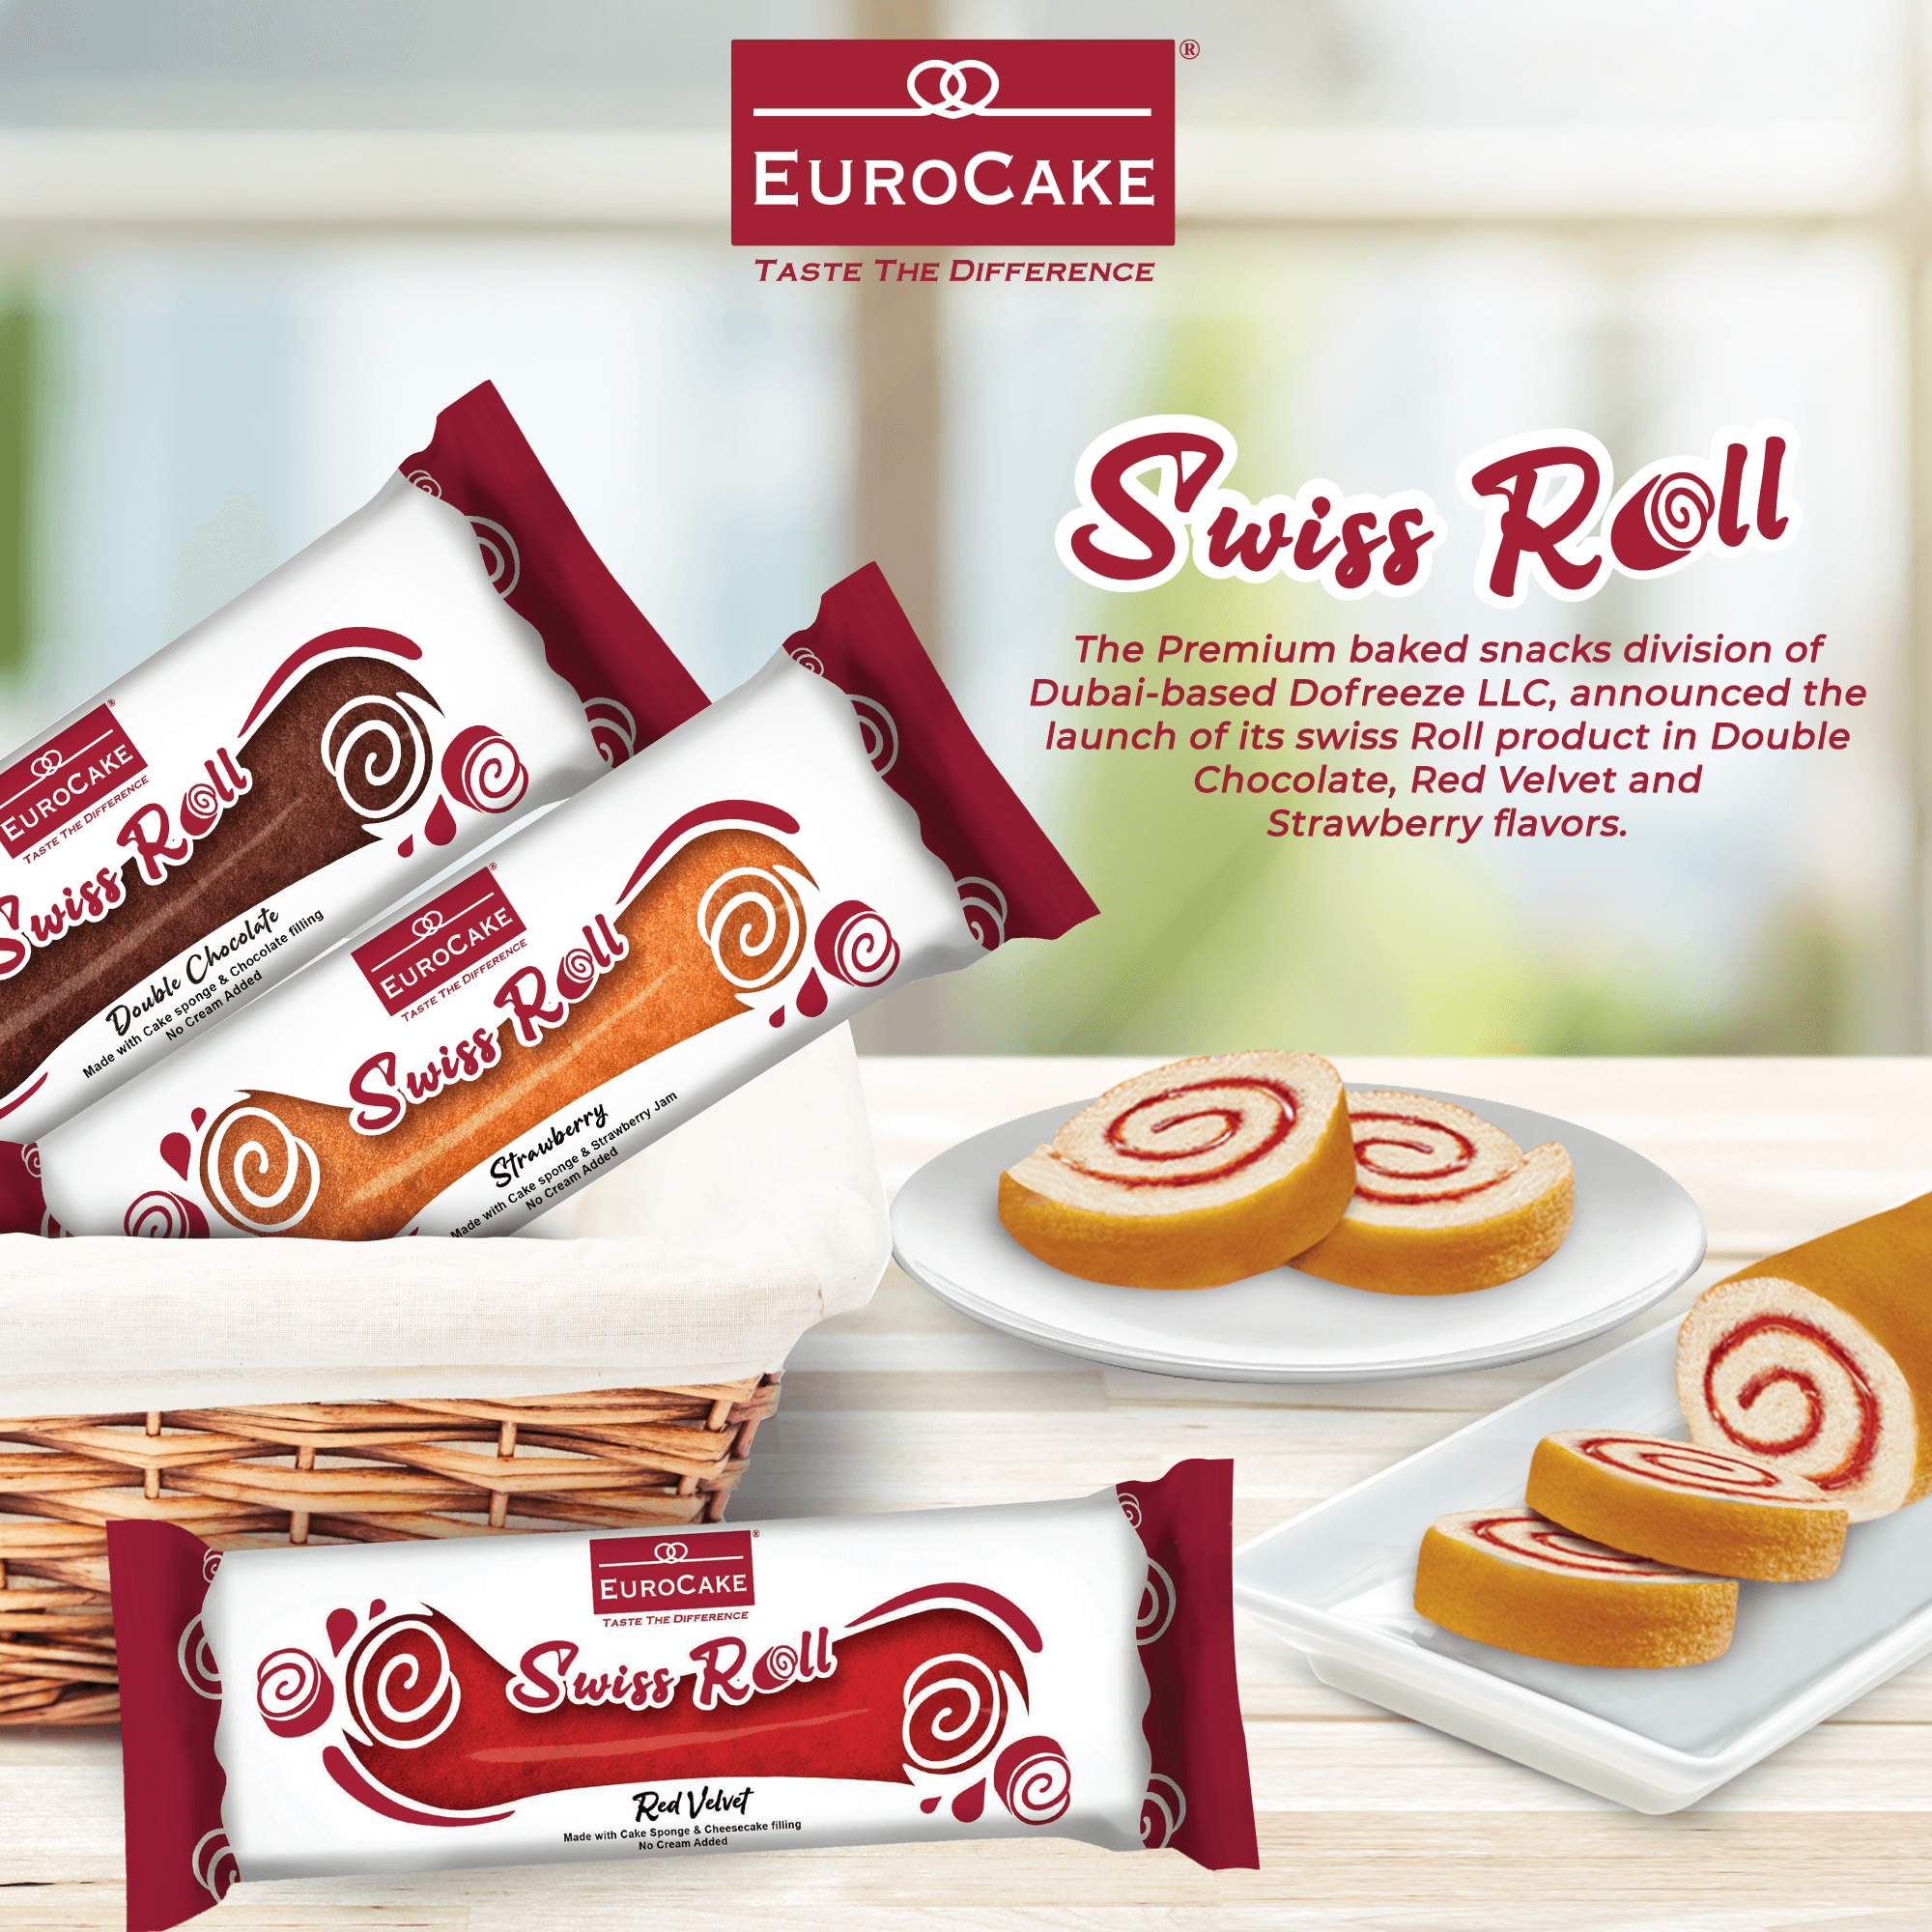 Eurocake Swiss Roll Press Release Artwork